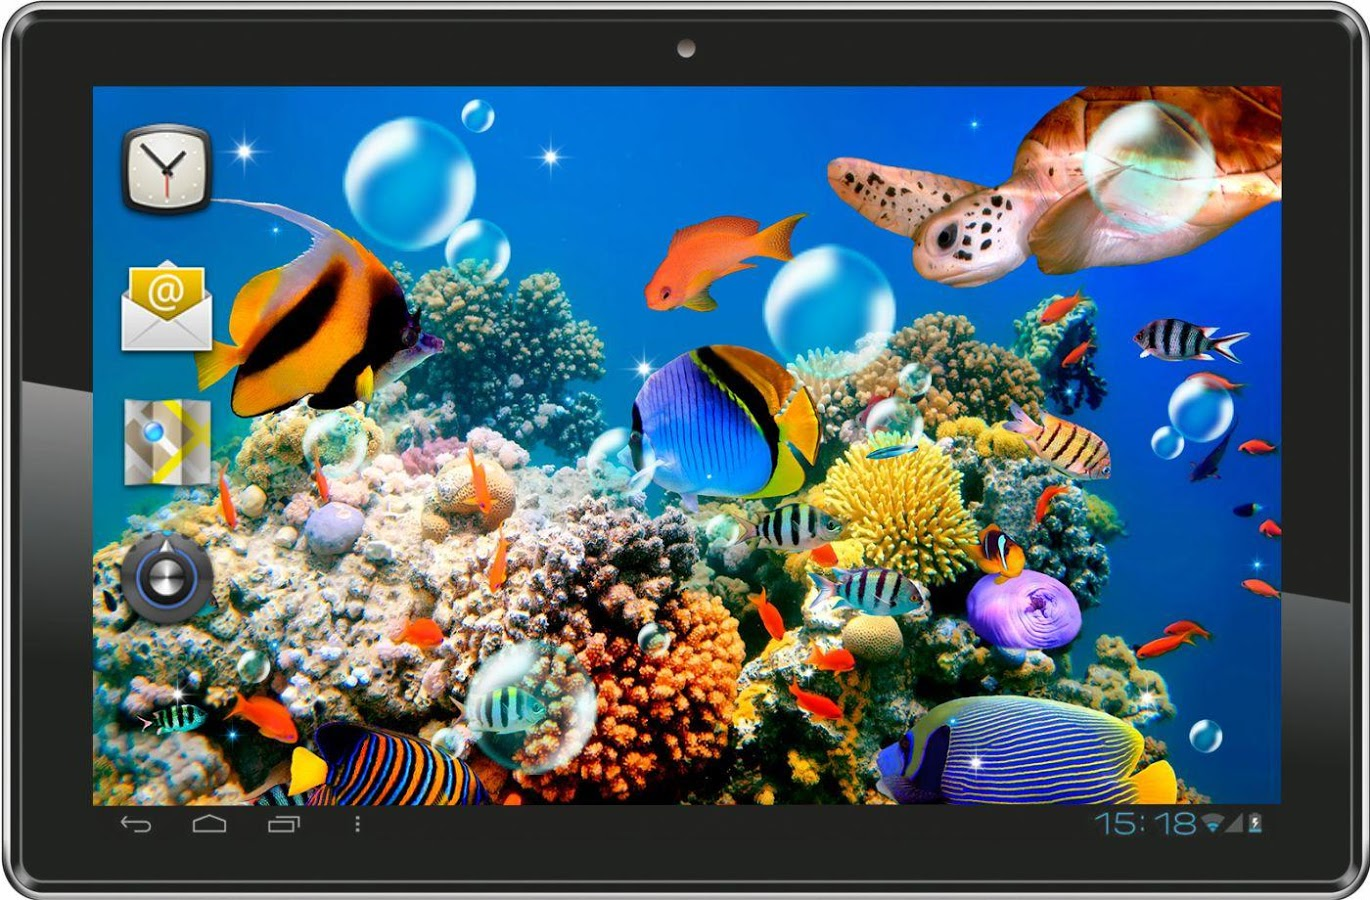 live wallpaper fish aquarium live wallpaper fish tank dowload live 1370x900